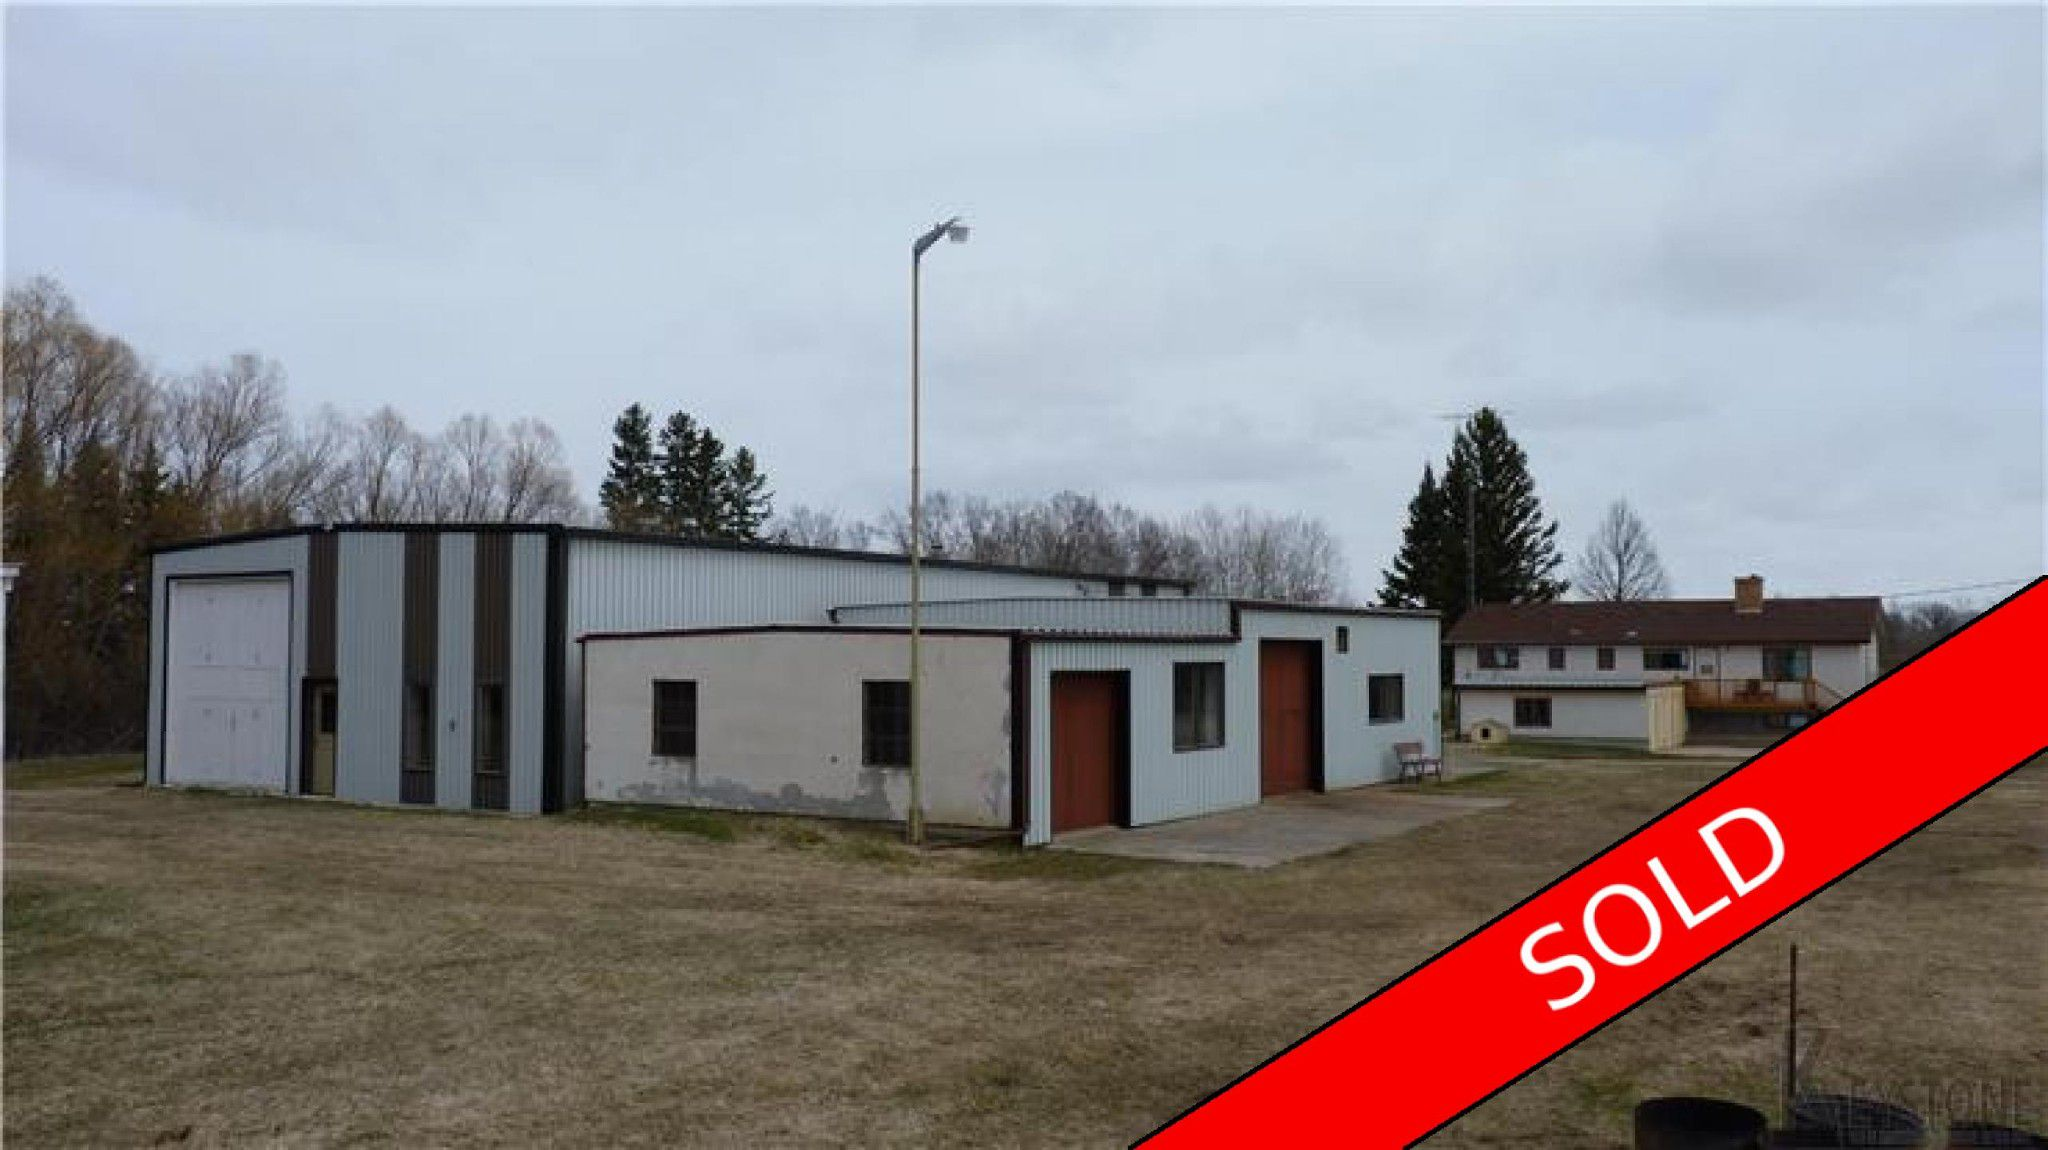 Main Photo: 89100 34E-Boulton RD in St Clements, MB R0E1C0: House for sale : MLS®# 1709963